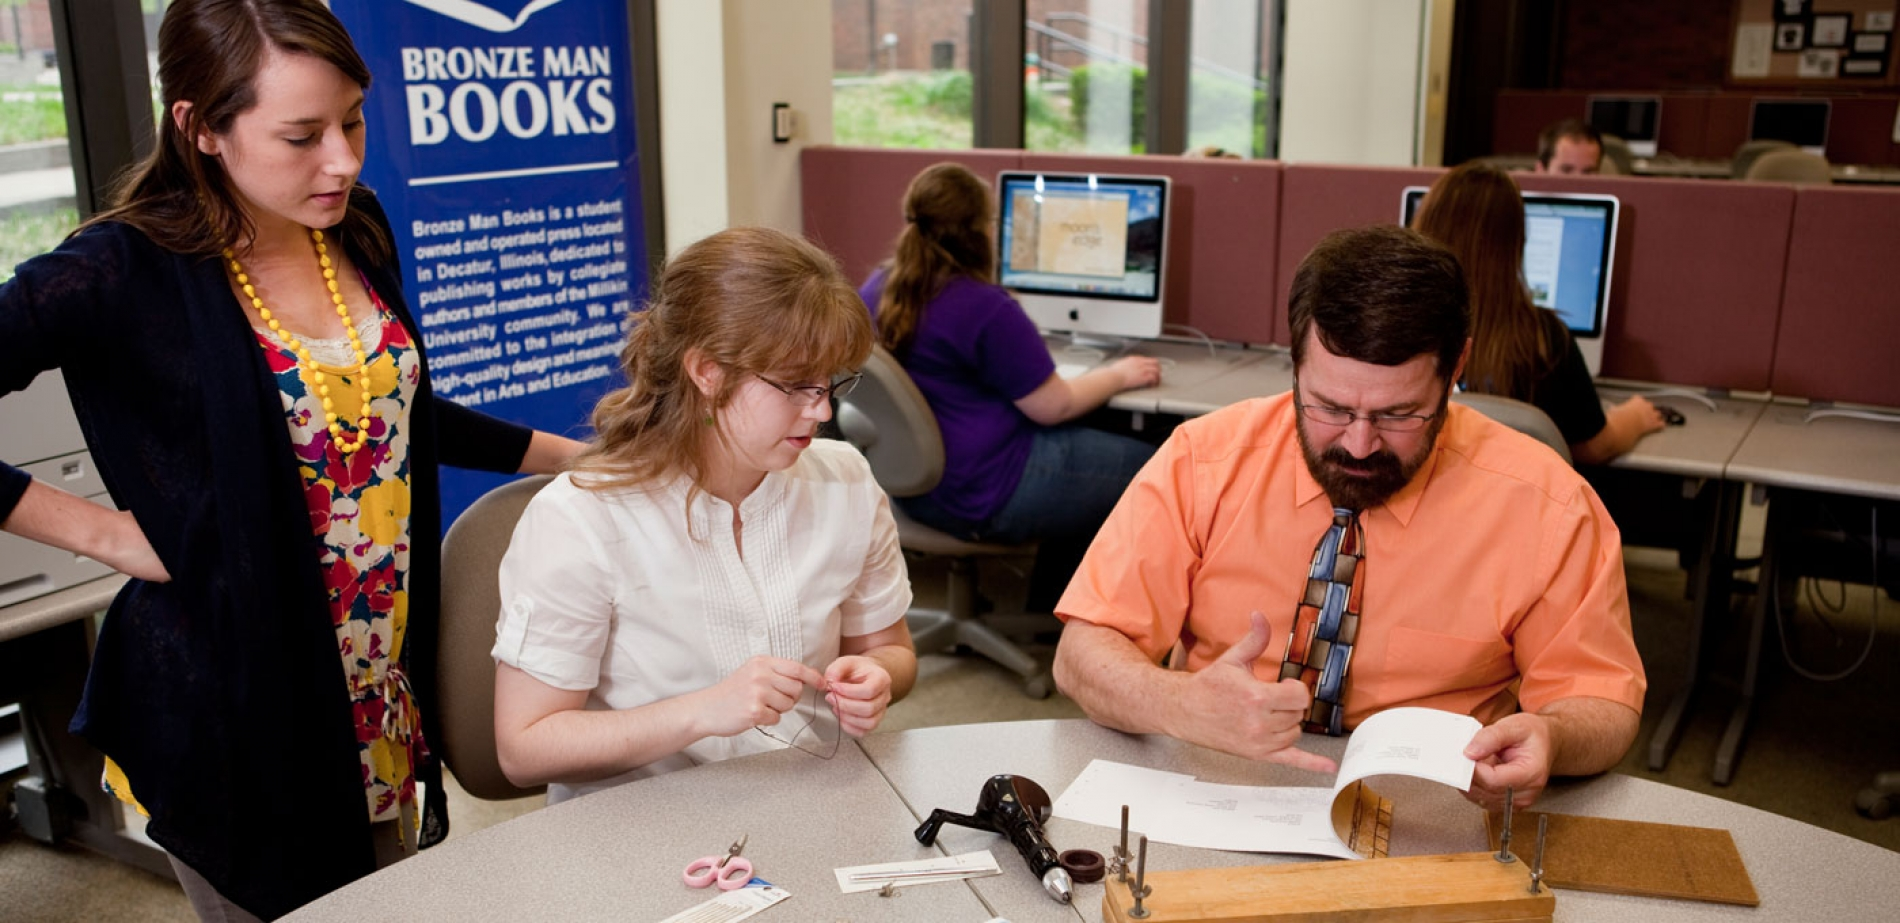 This photo shows faculty member Dr. Brooks flipping through a book with two students at a Bronze Man Books event.